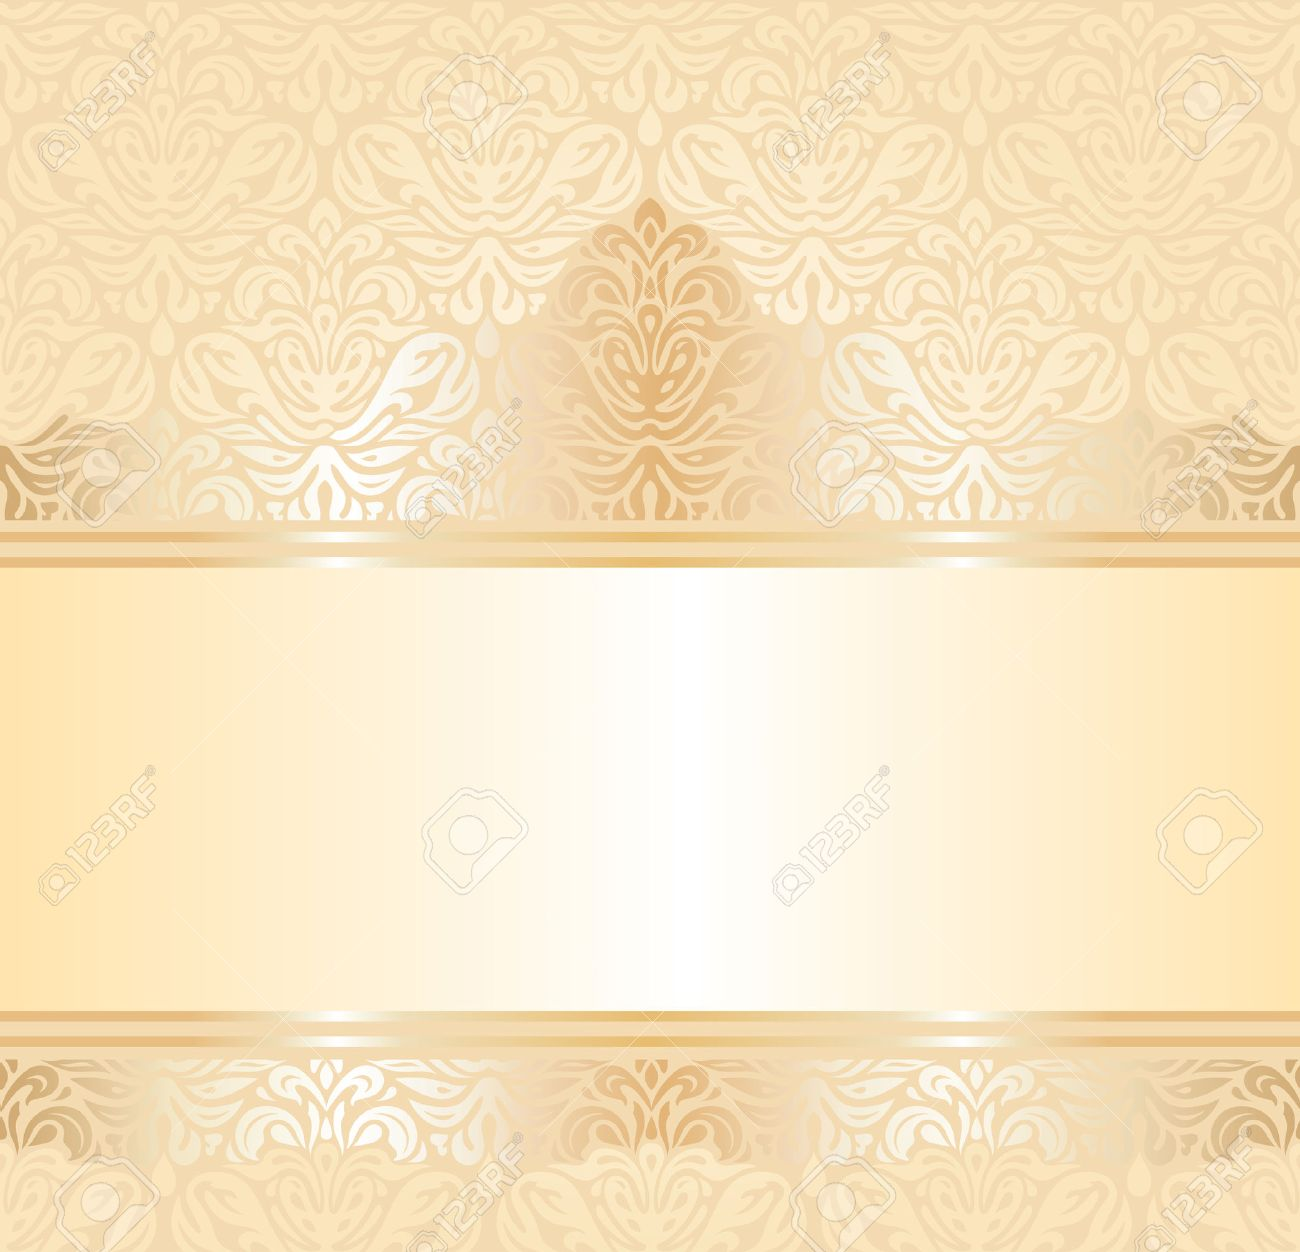 Gentle Wedding Pale Peach Invitation Background Design Royalty Free